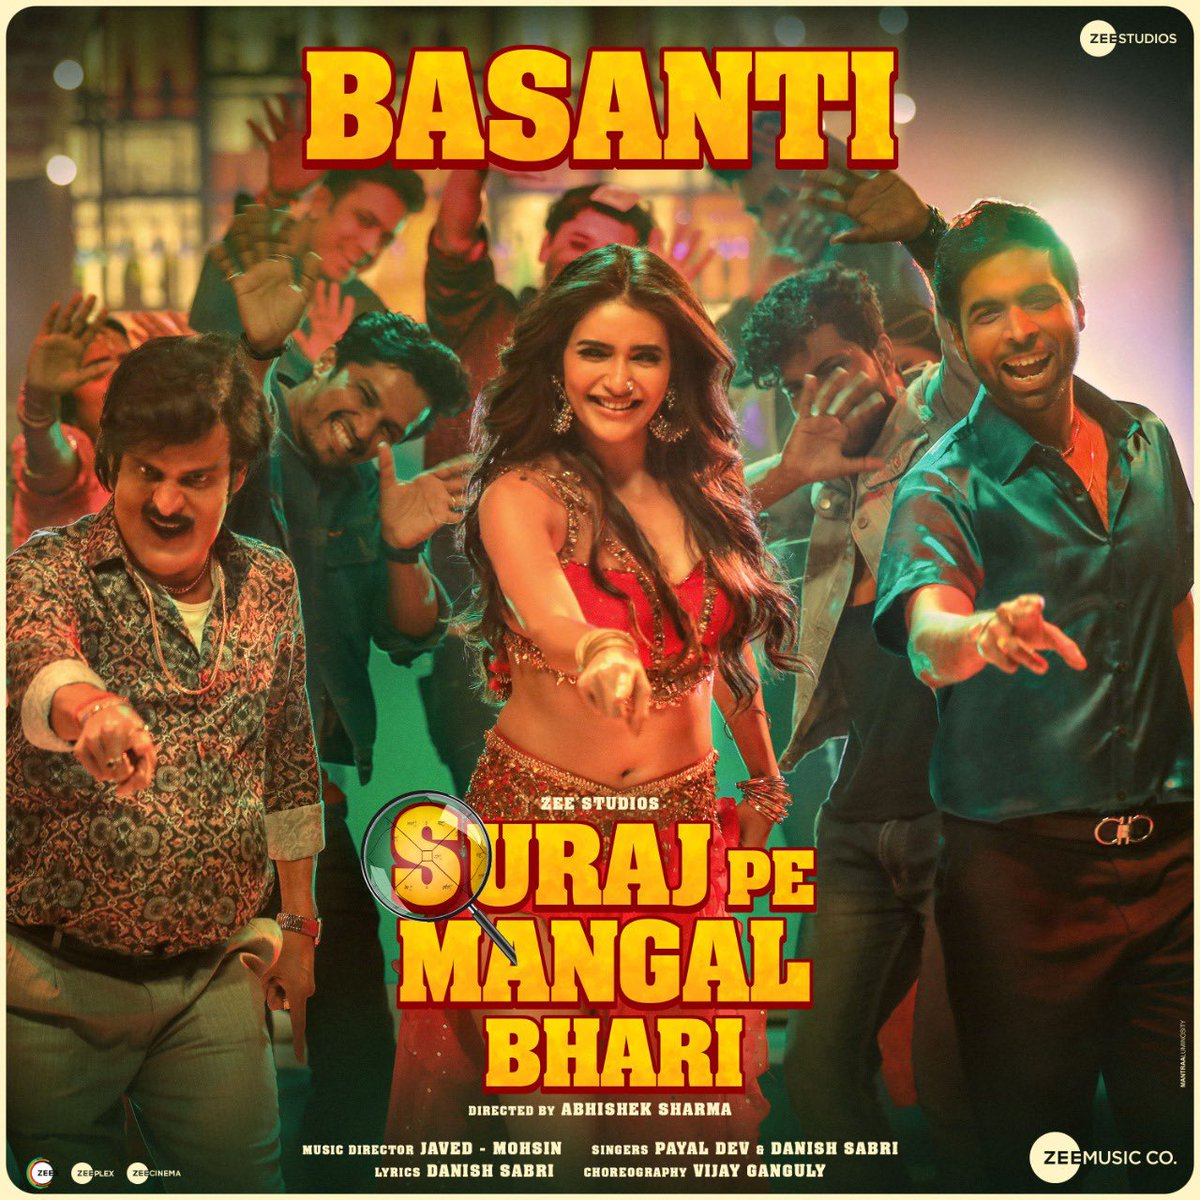 Basanti (Suraj Pe Mangal Bhari) 2020 Hindi Video Song 1080p HDRip Free Download